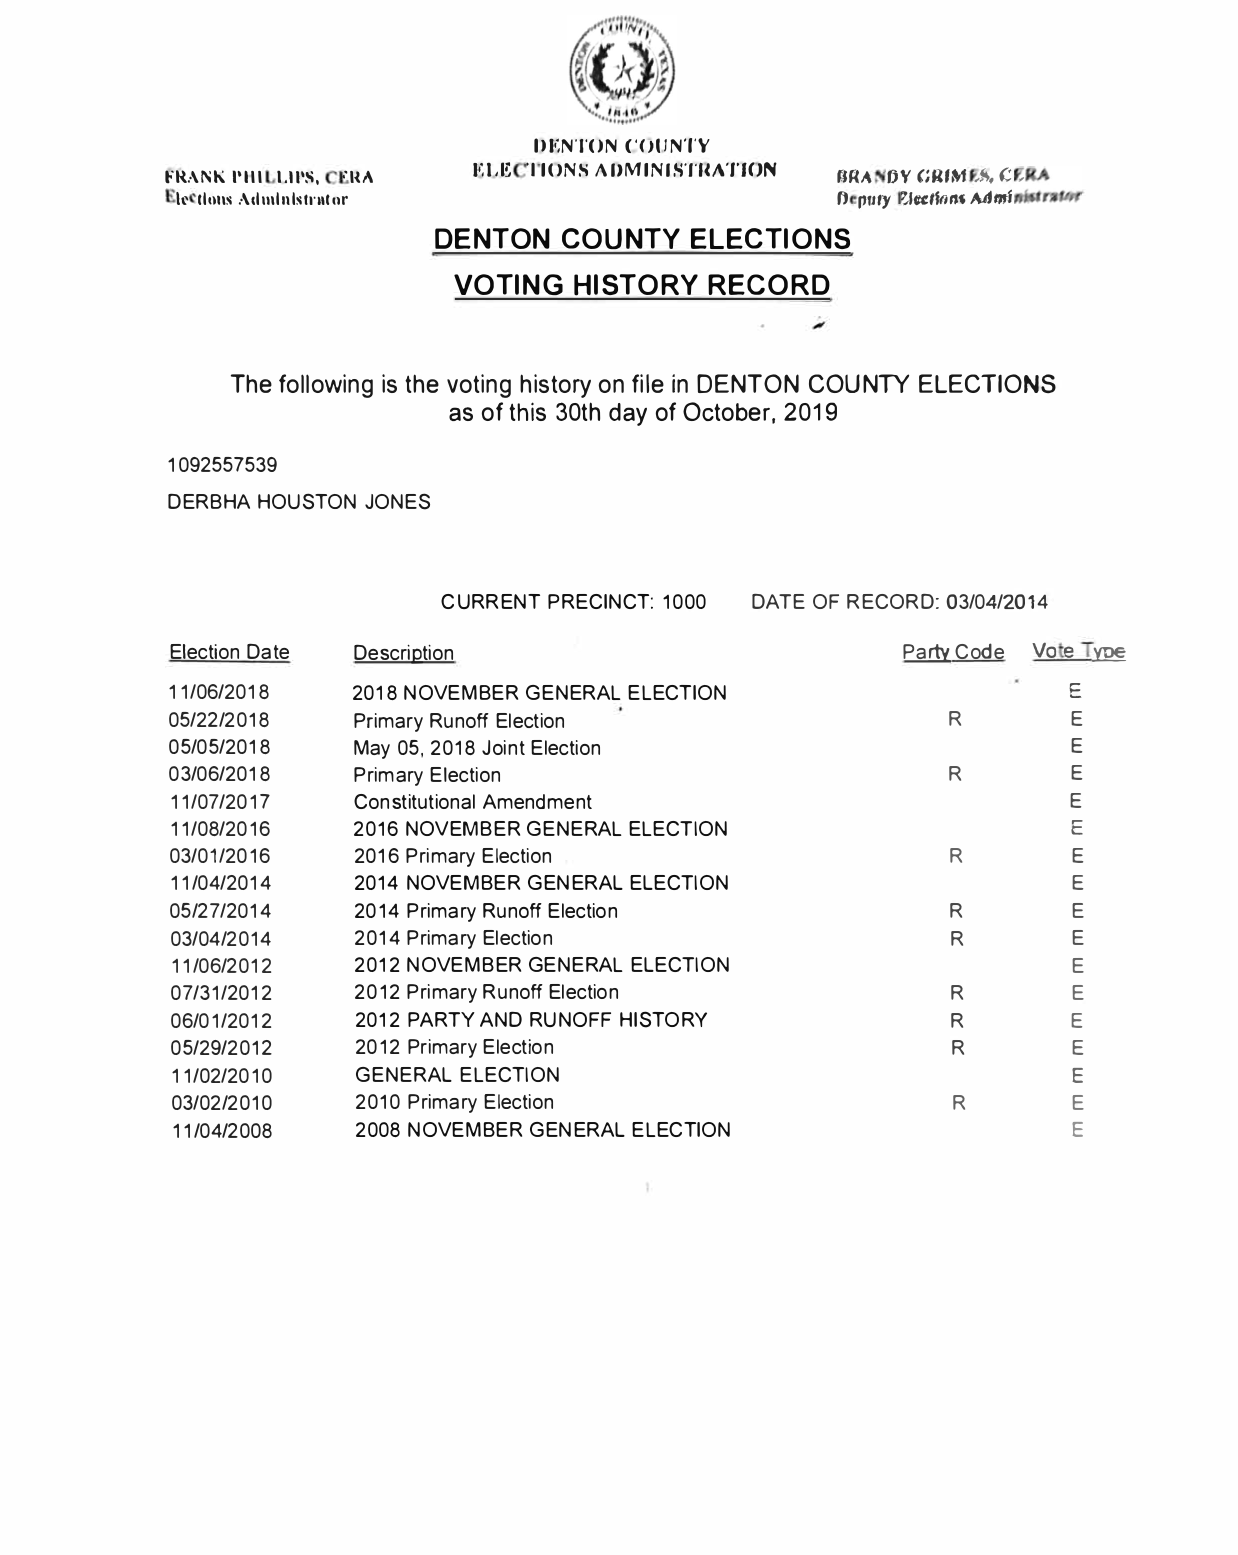 10 year voting history without address